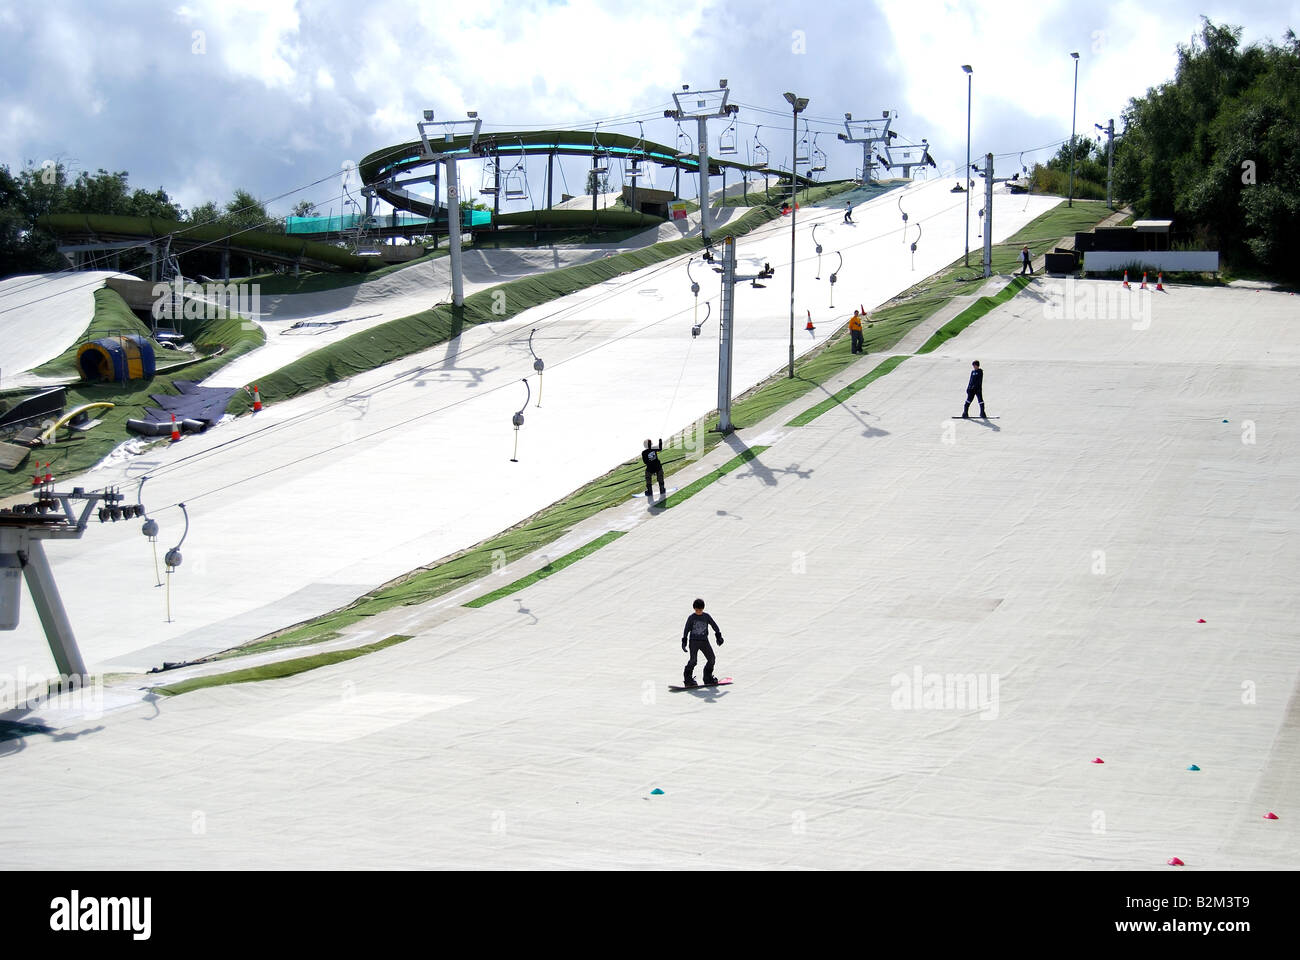 John Nike Skiing & Snowboarding Centre, Bracknell, Berkshire, England. United Kingdom Stock Photo